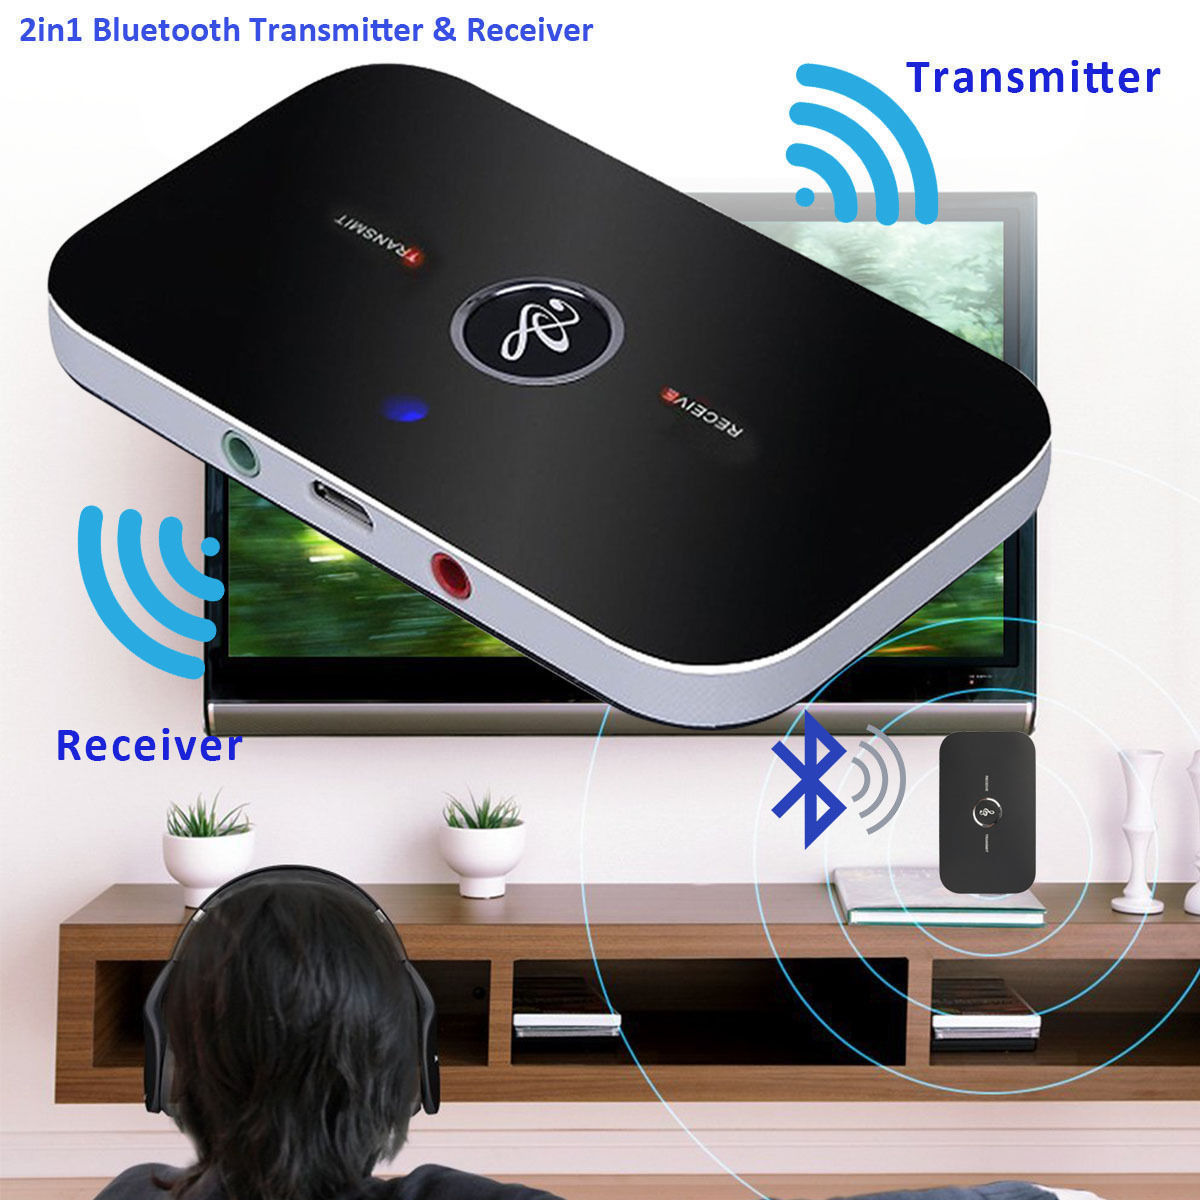 2in1 A2DP Home TV Stereo Audio Adapter Bluetooth Transmitter & Receiver Wireles